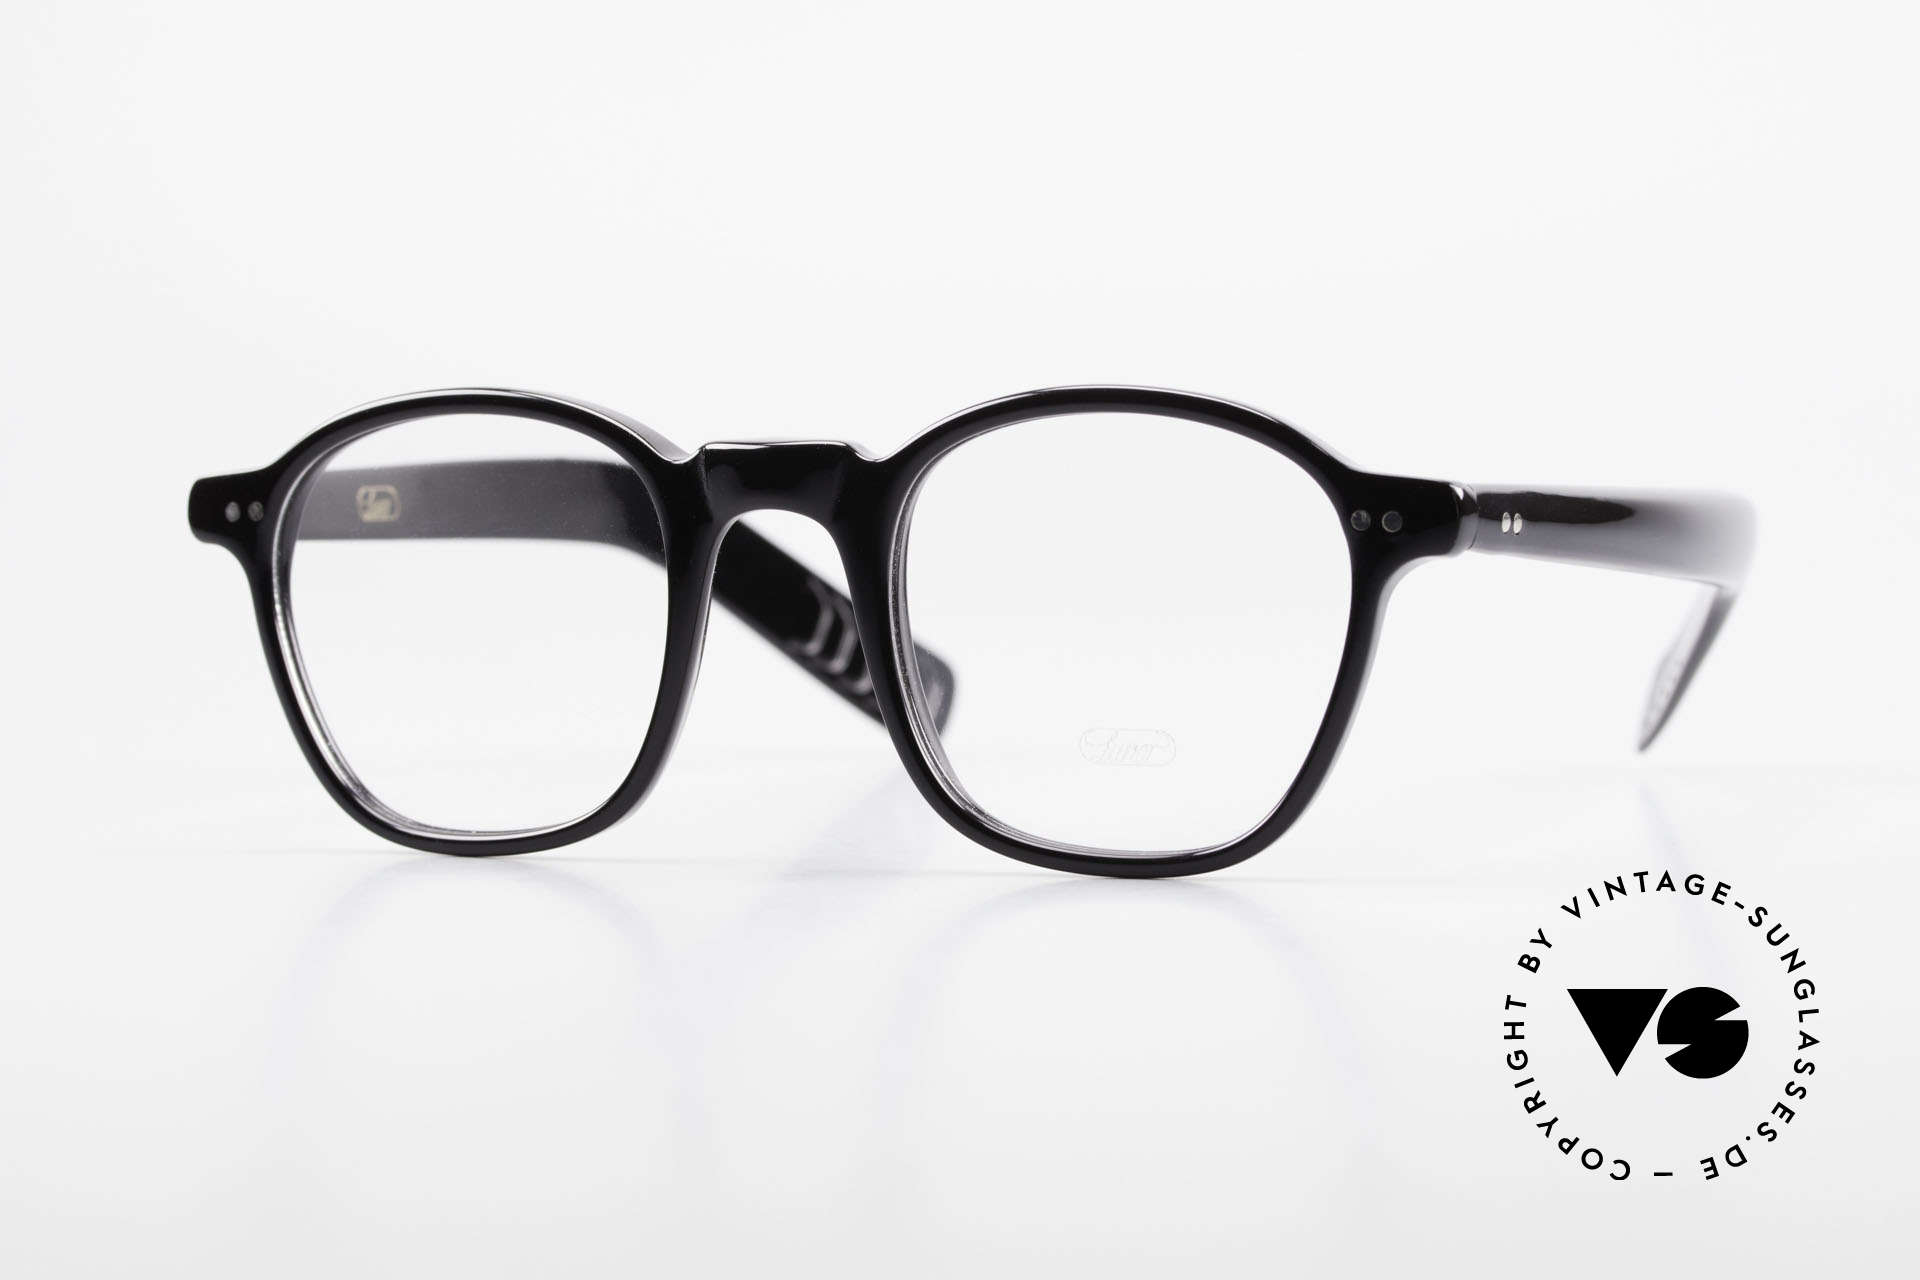 Lunor A51 James Dean Johnny Depp Specs, rare LUNOR glasses, model 51 from the Acetate collection, Made for Men